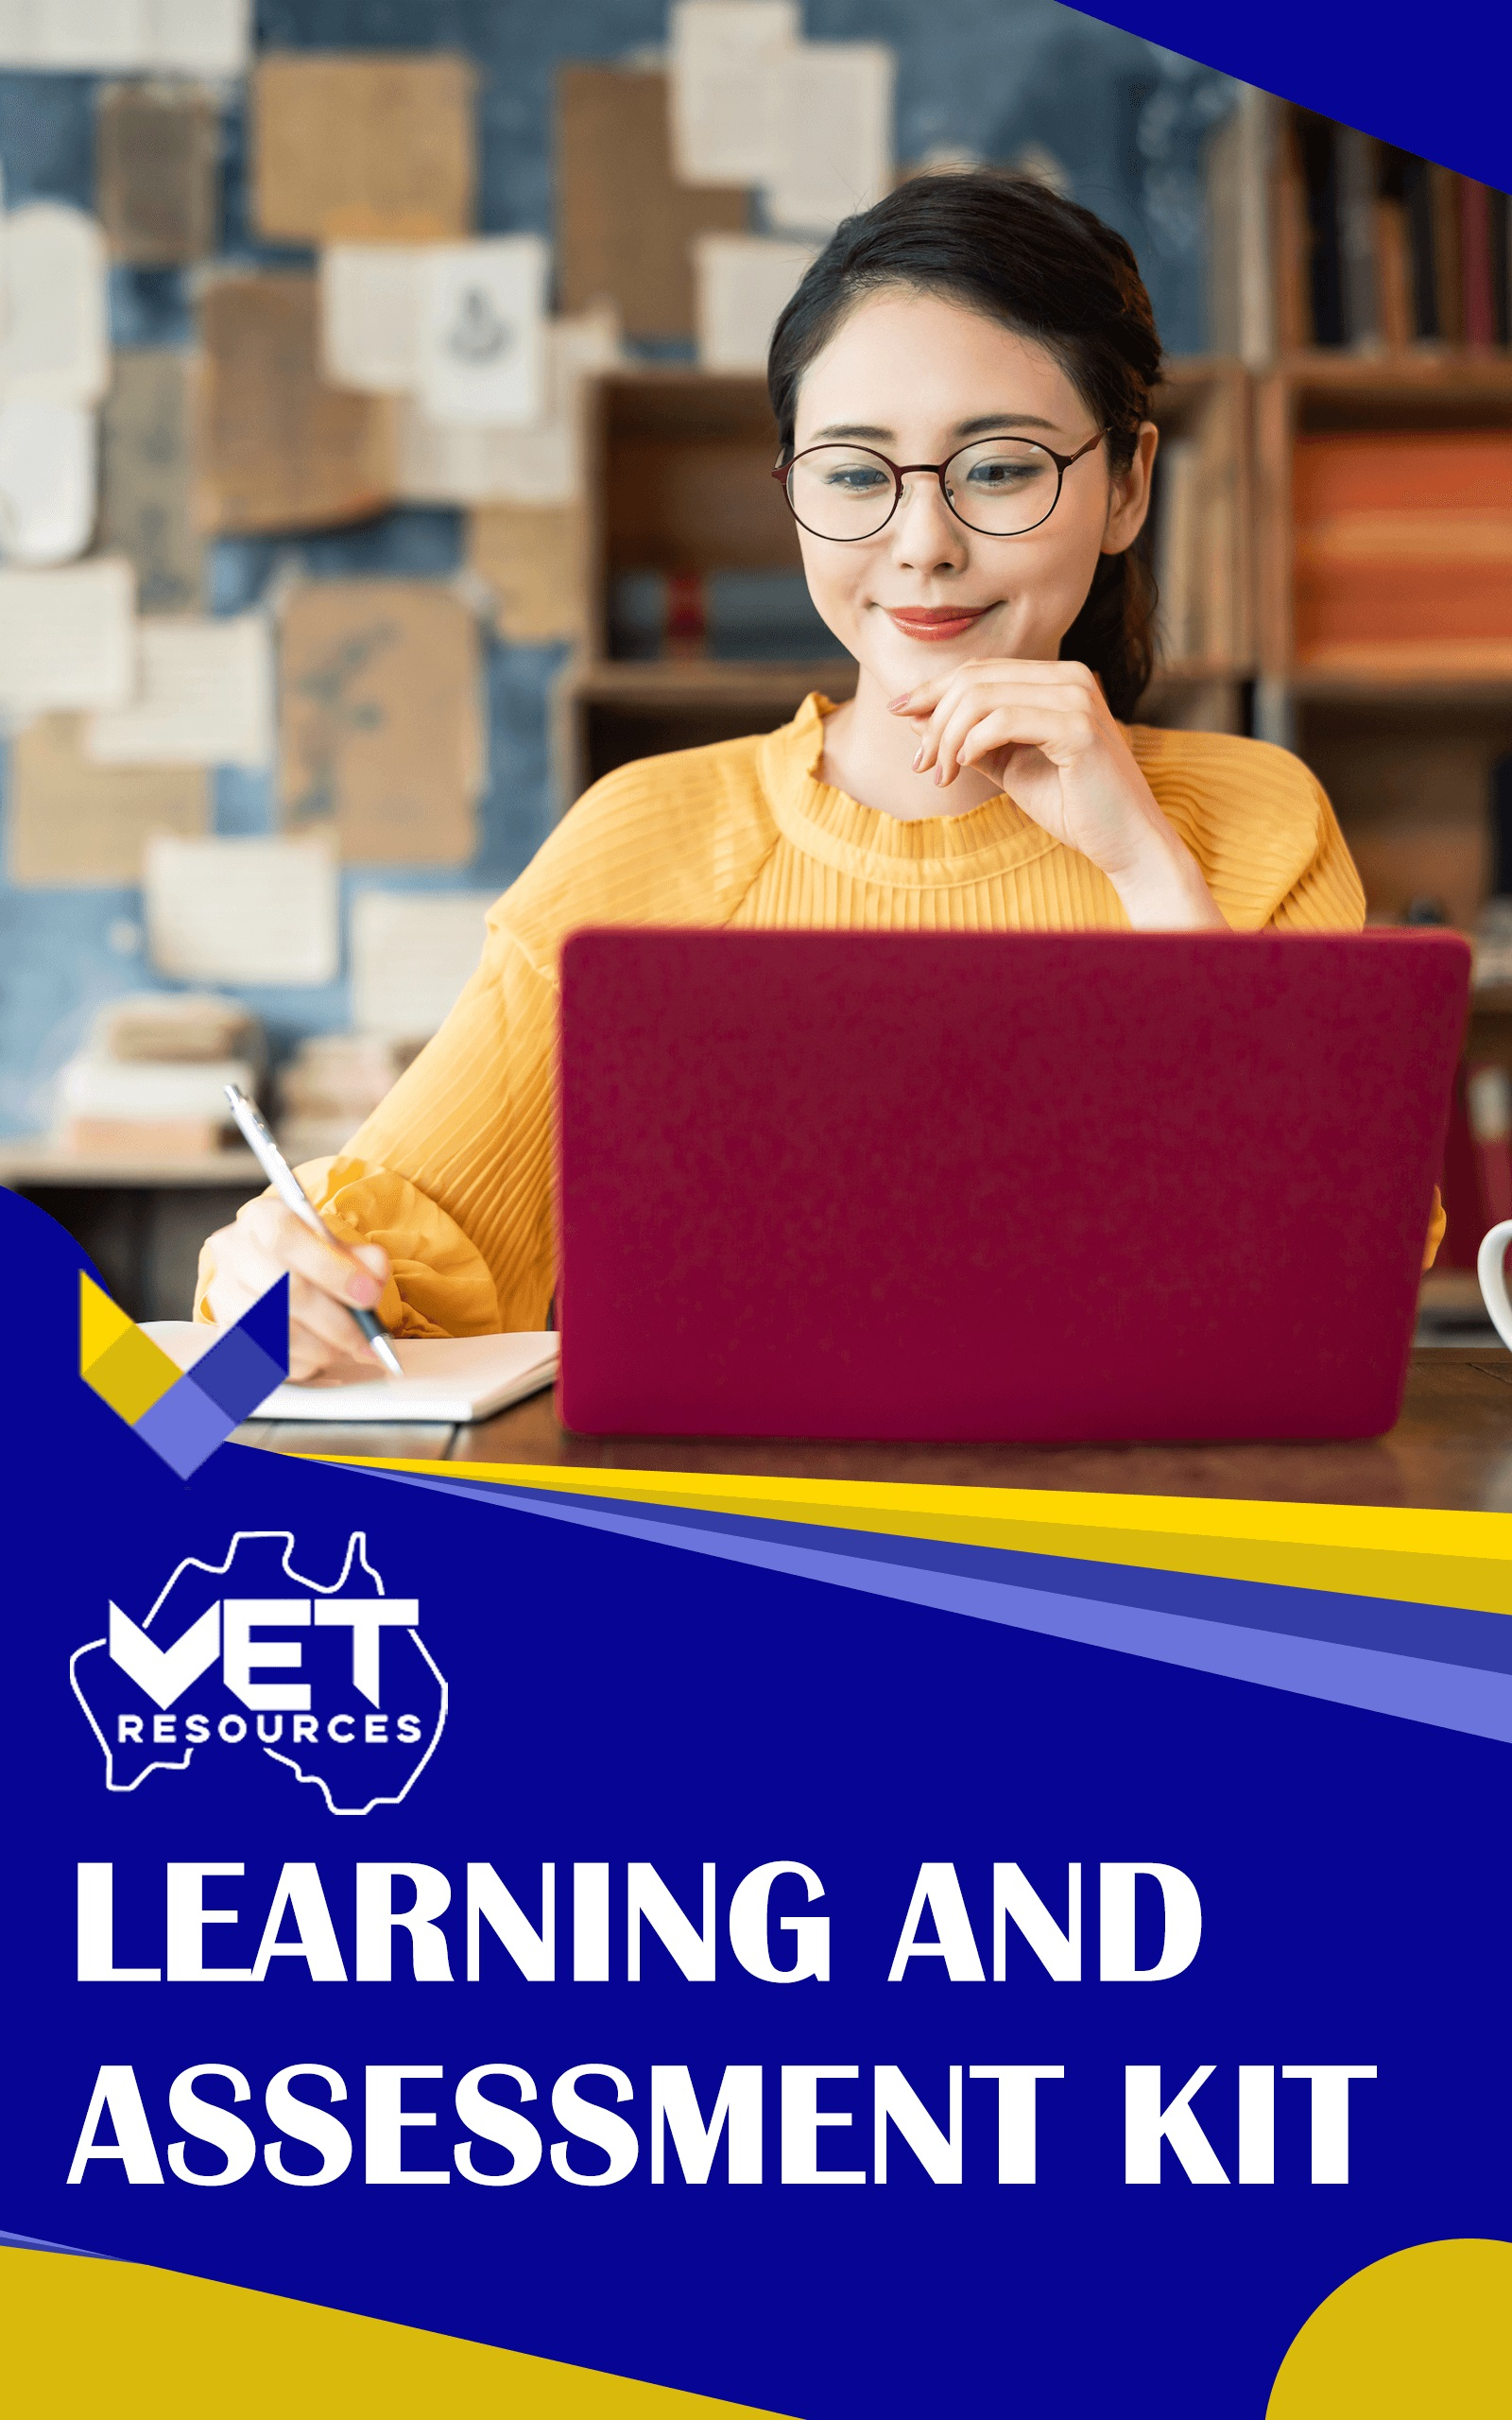 VET Resources -RTO Learning and Assessment Kits